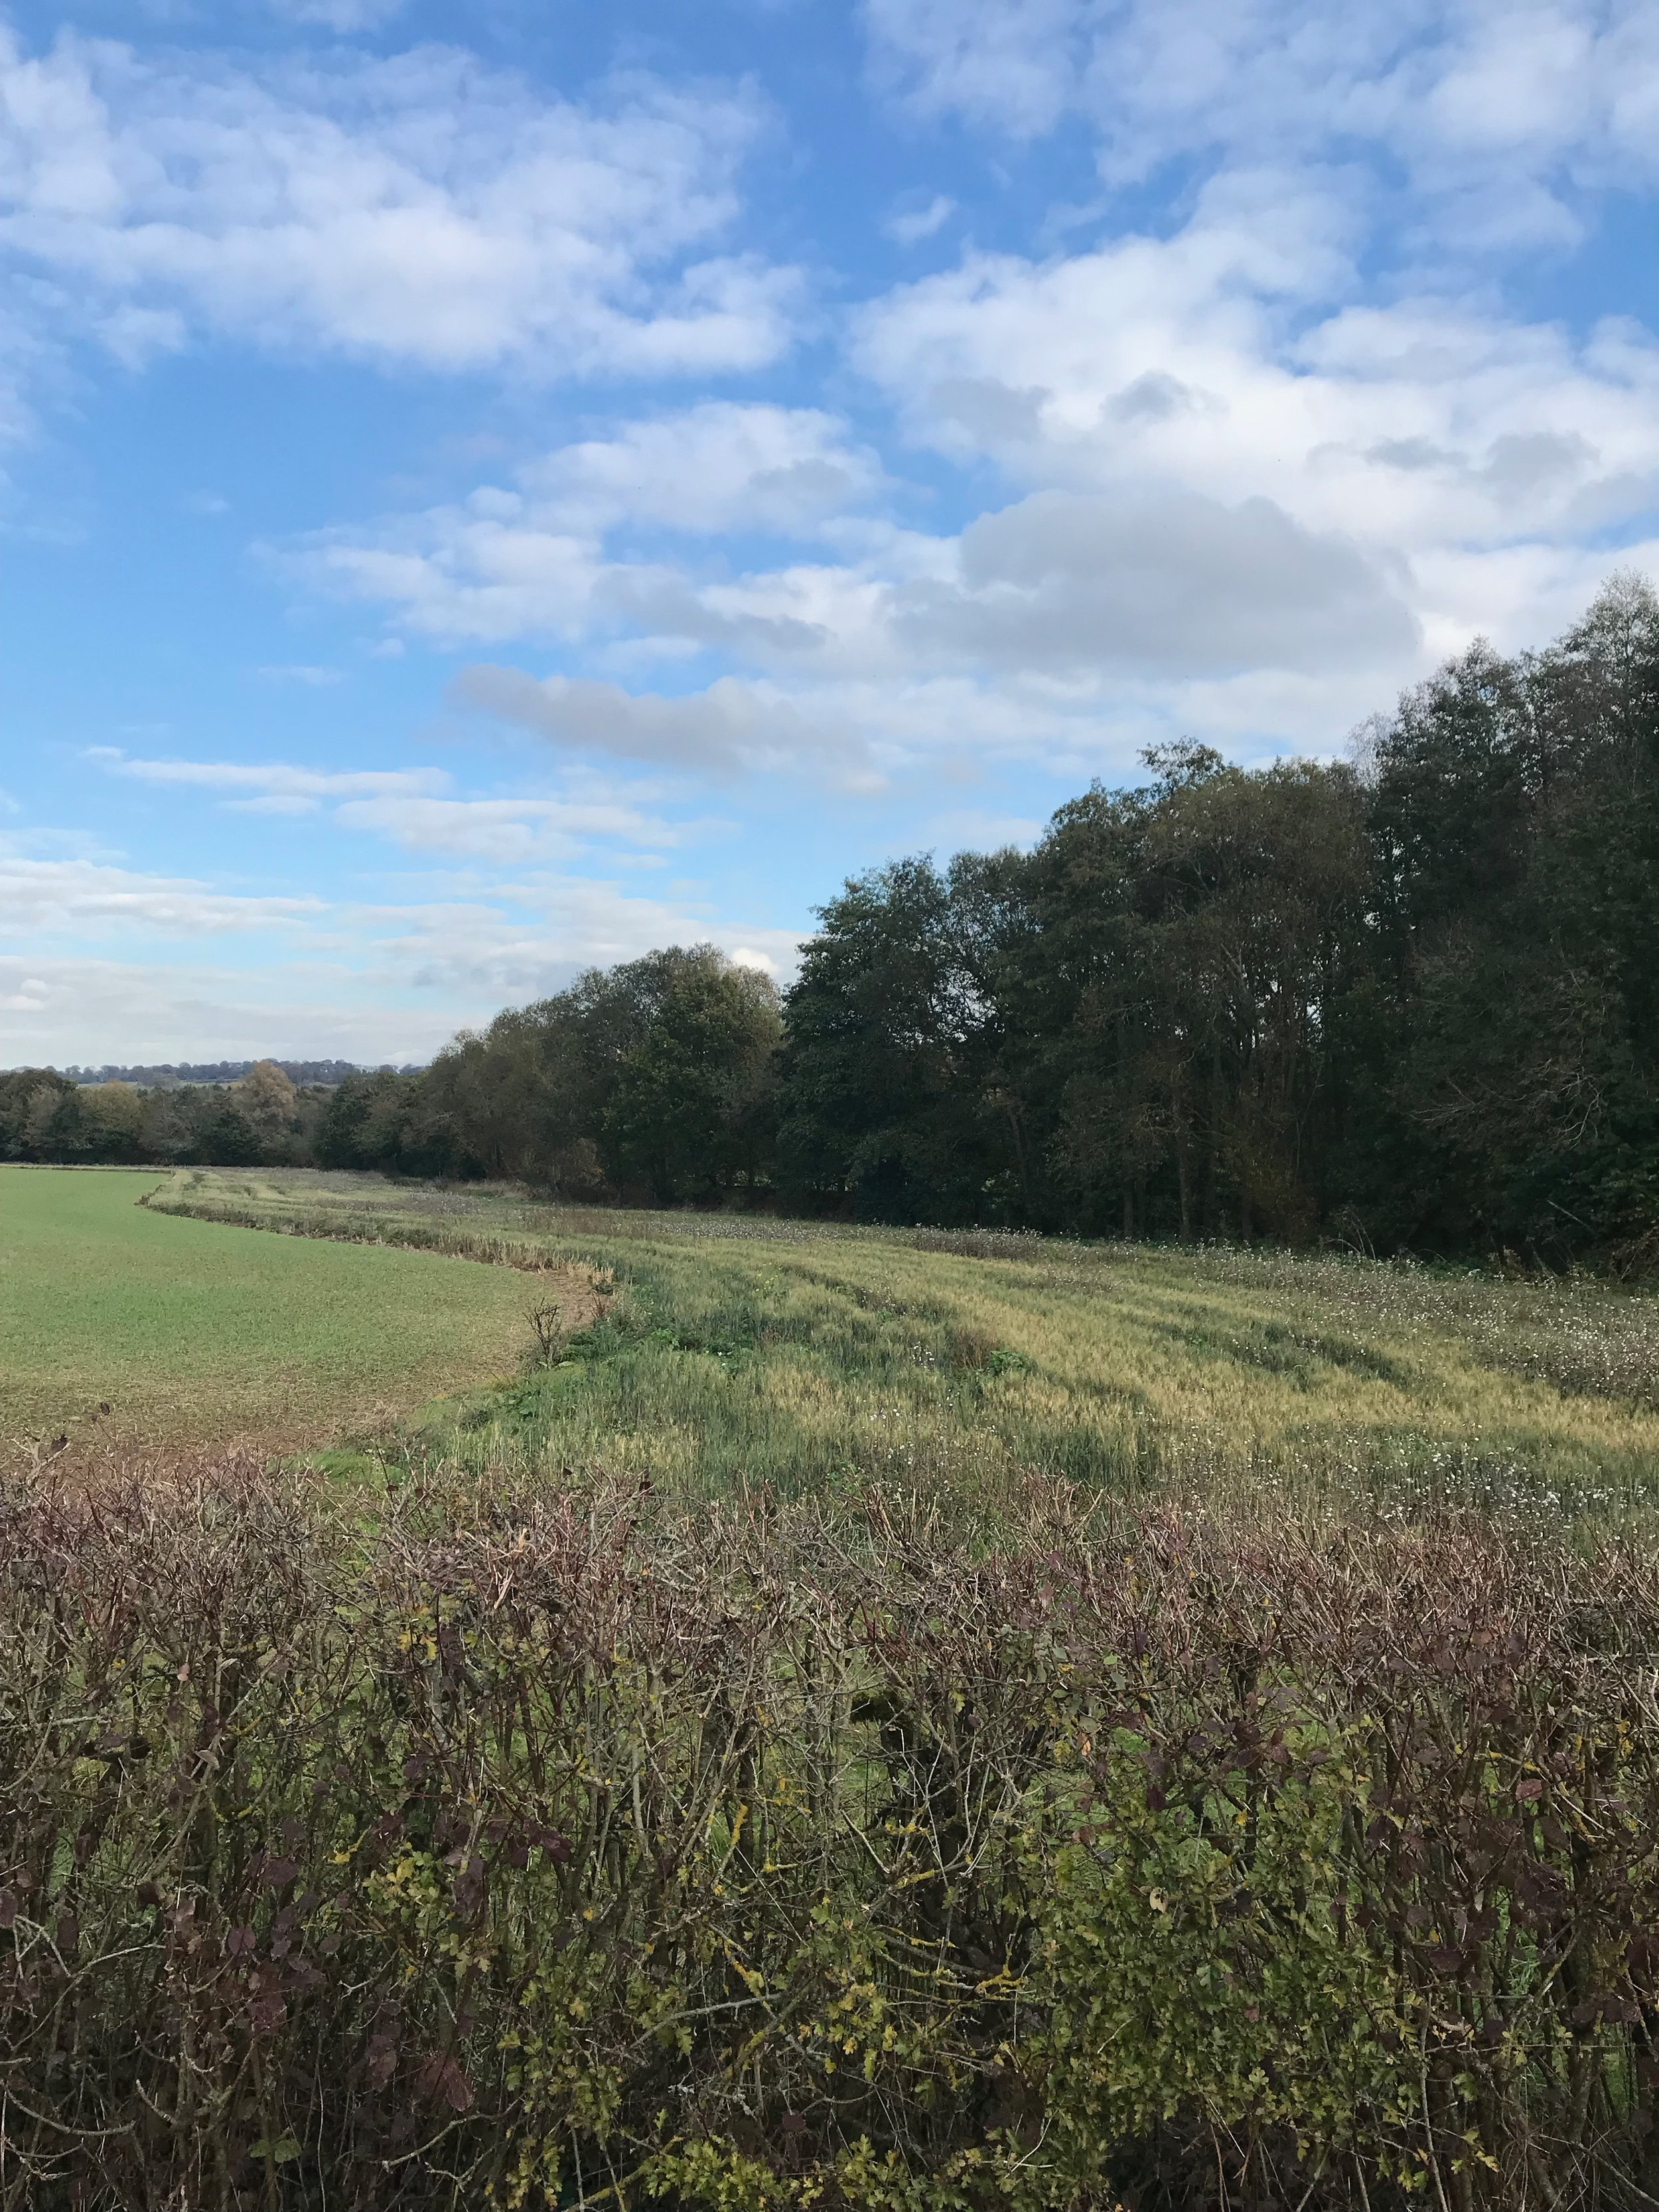 An organic field in Gloucestershire which has allowed a large wildflower margin alongside the crop.